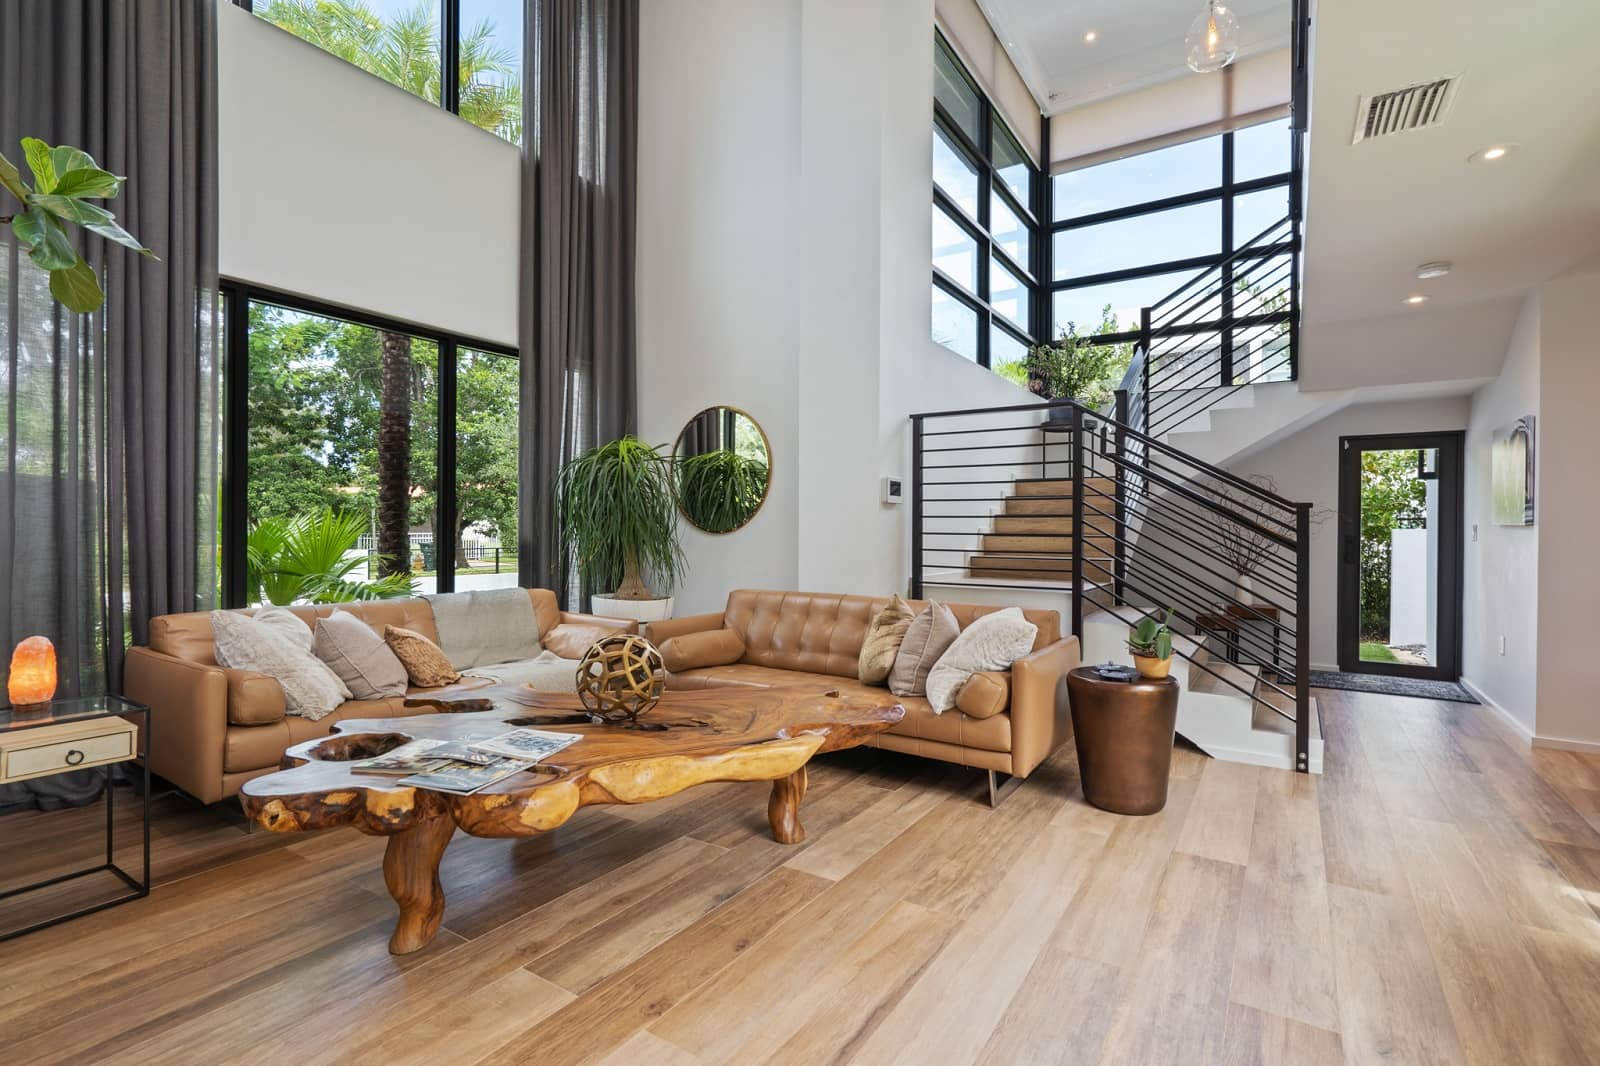 Real Estate Photography in Miami - FL - USA - Living Area View